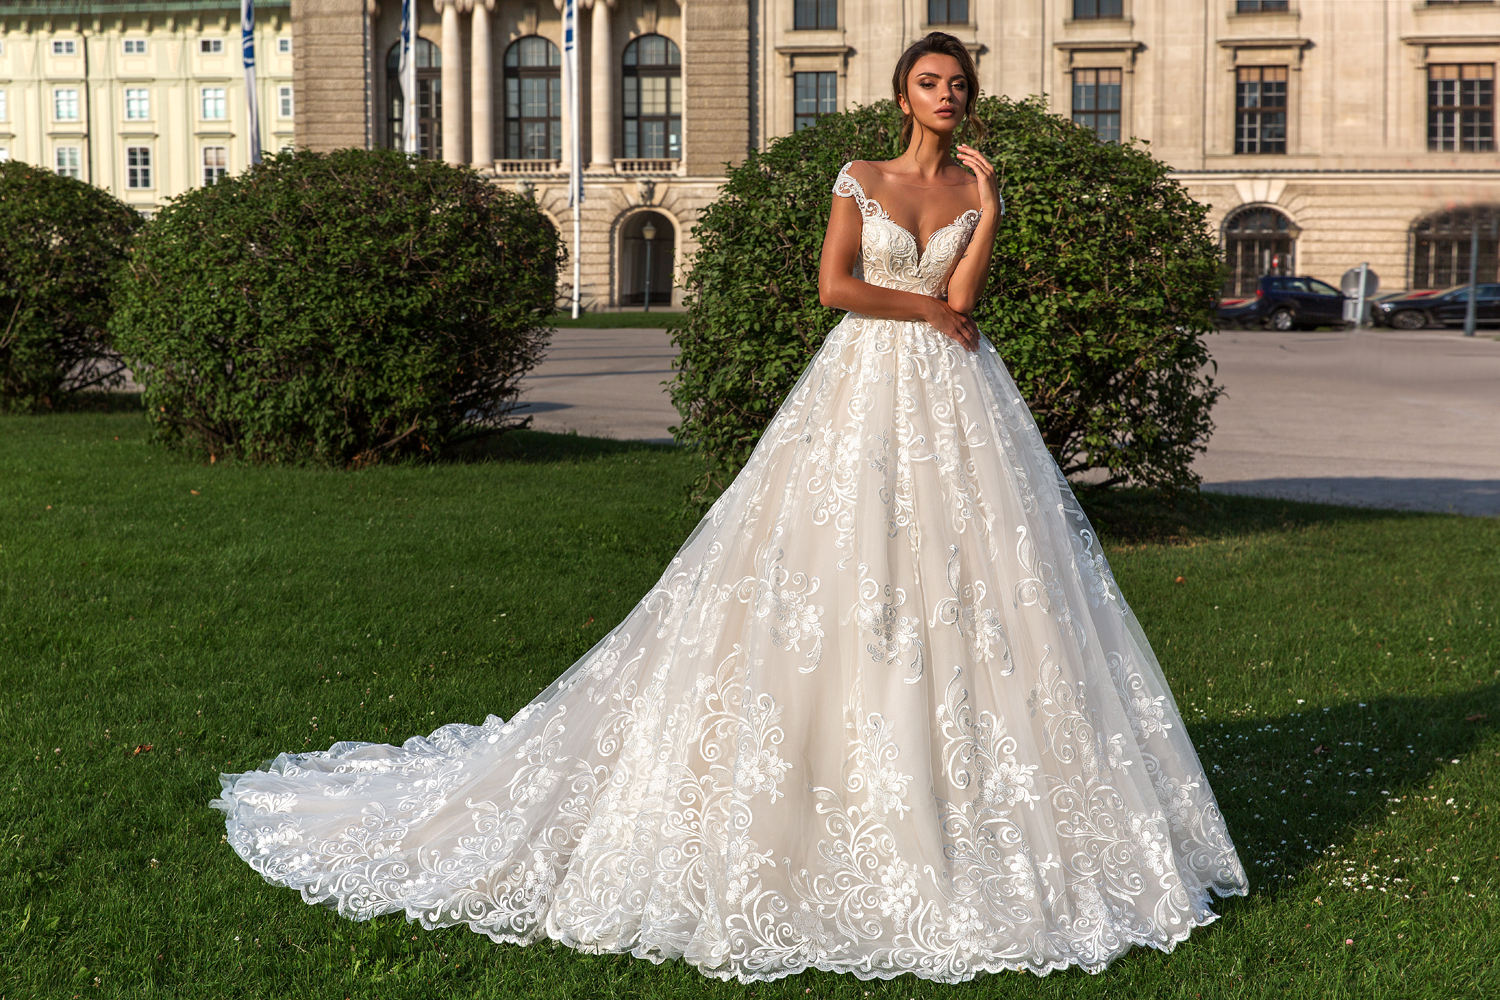 off shoulder lace ballgown by Crystal Design Couture